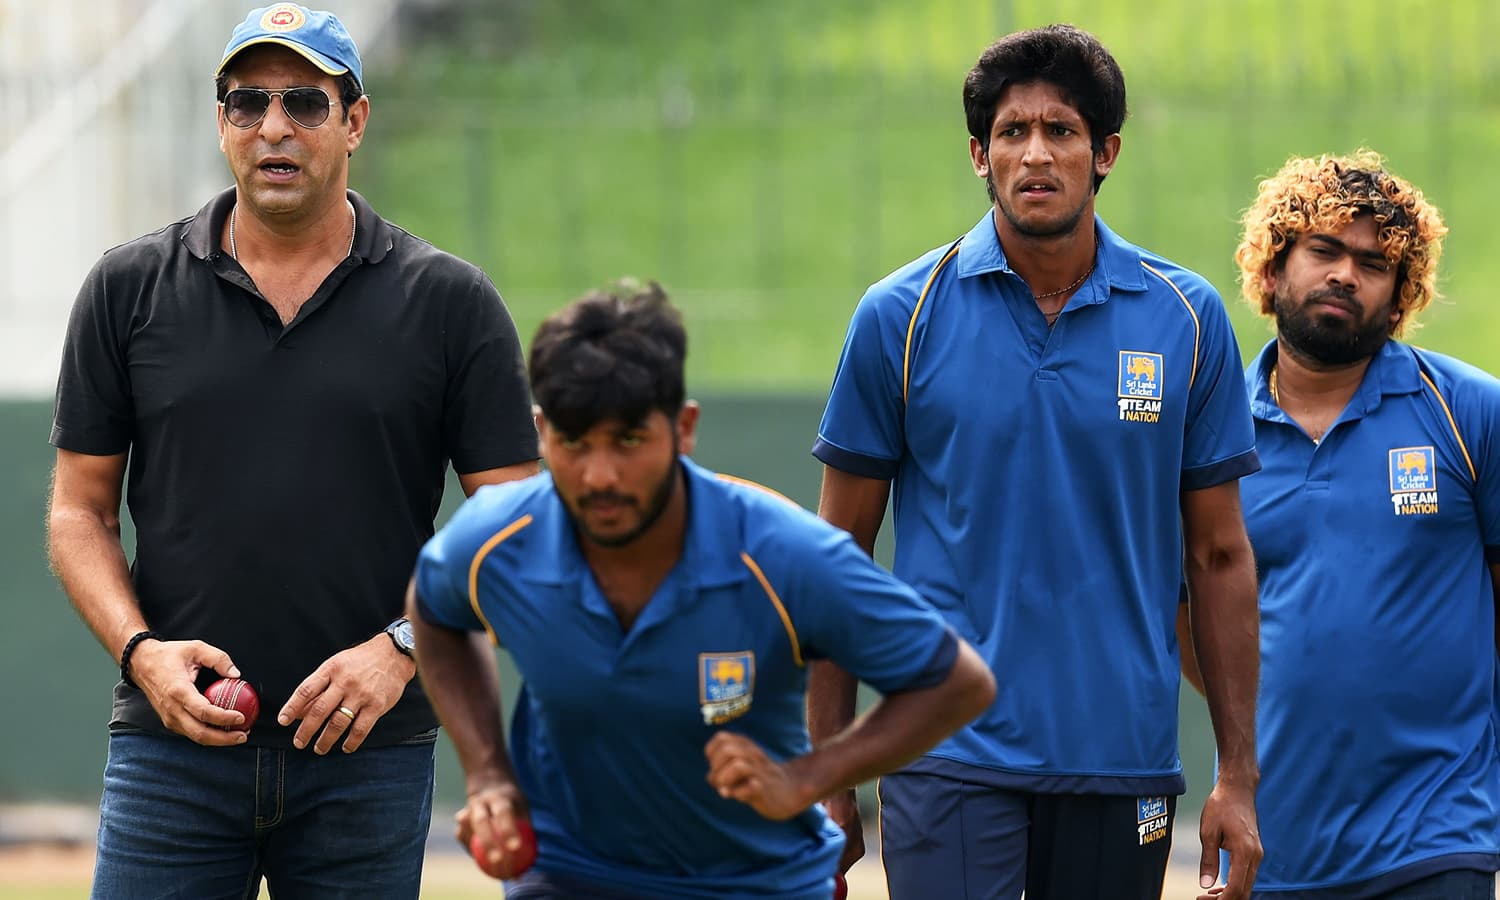 Sri Lankan cricketers Lasith Malinga and Kasun Rajitha look on during the first coaching session by Wasim Akram. -AFP